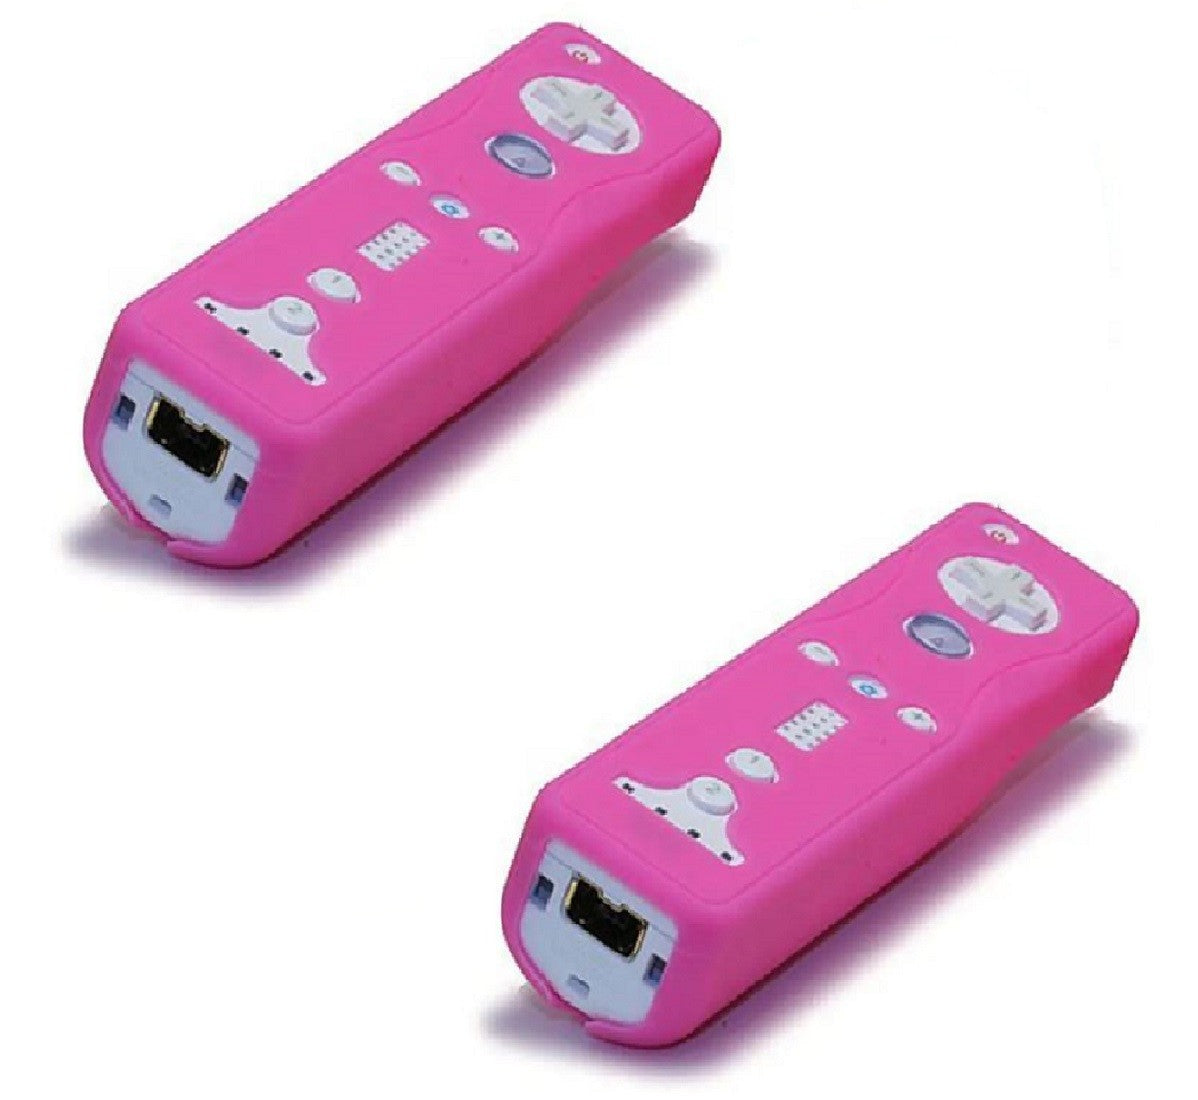 Wii LOT 2 - PINK - Silicone CASES - Nintendo WiiMotes